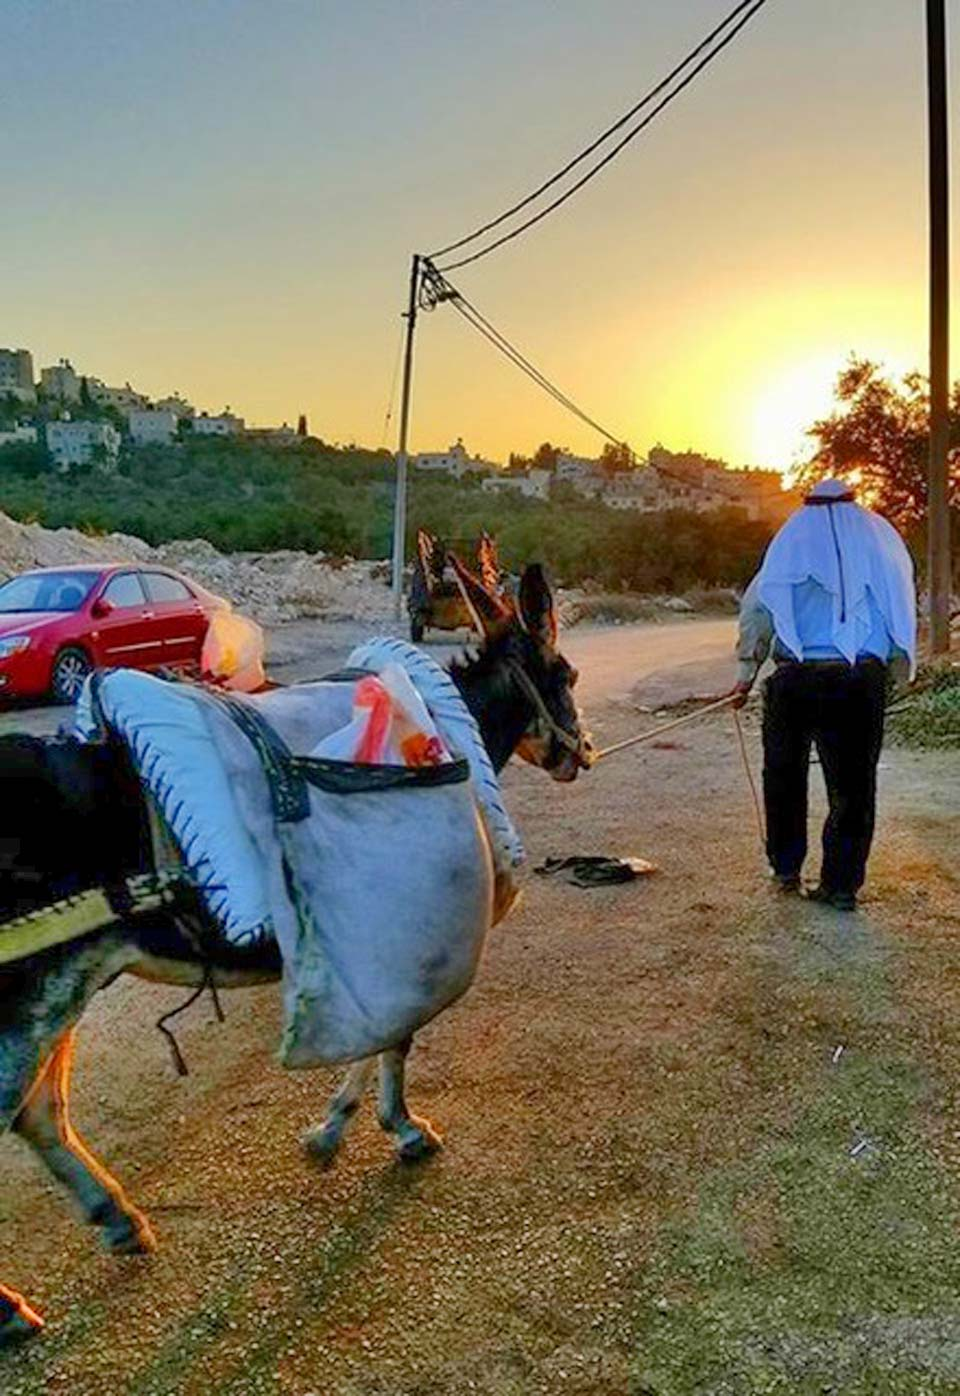 Sunset at the olive press in Asira al-Shimaliyah. People brought their olives by donkey, car, or truck.